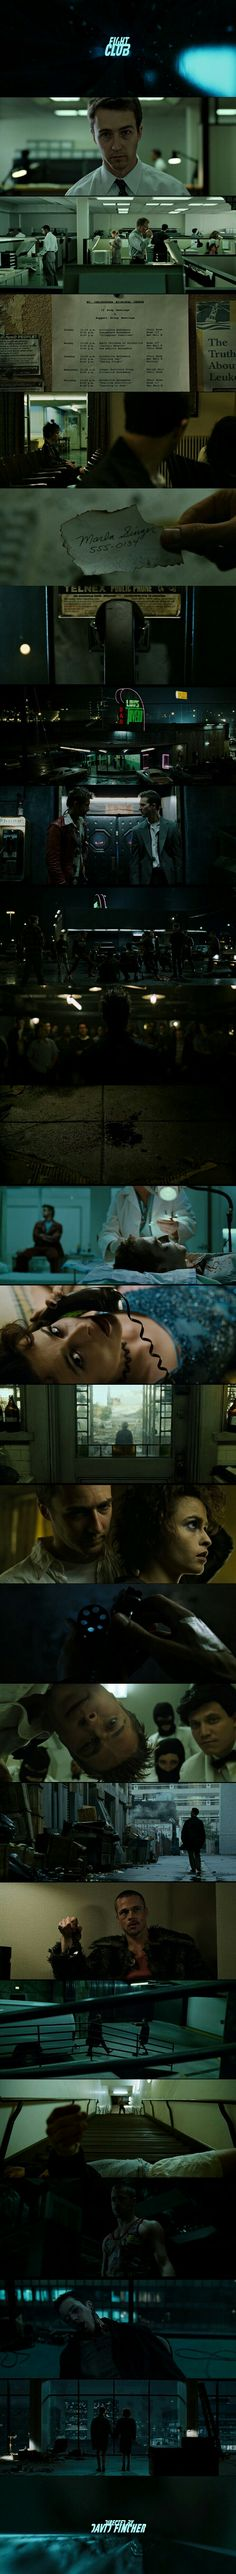 Fight Club (1999) Directed by David Fincher. Starring Brad Pitt, Edward Norton and Helena Bonham Carter.